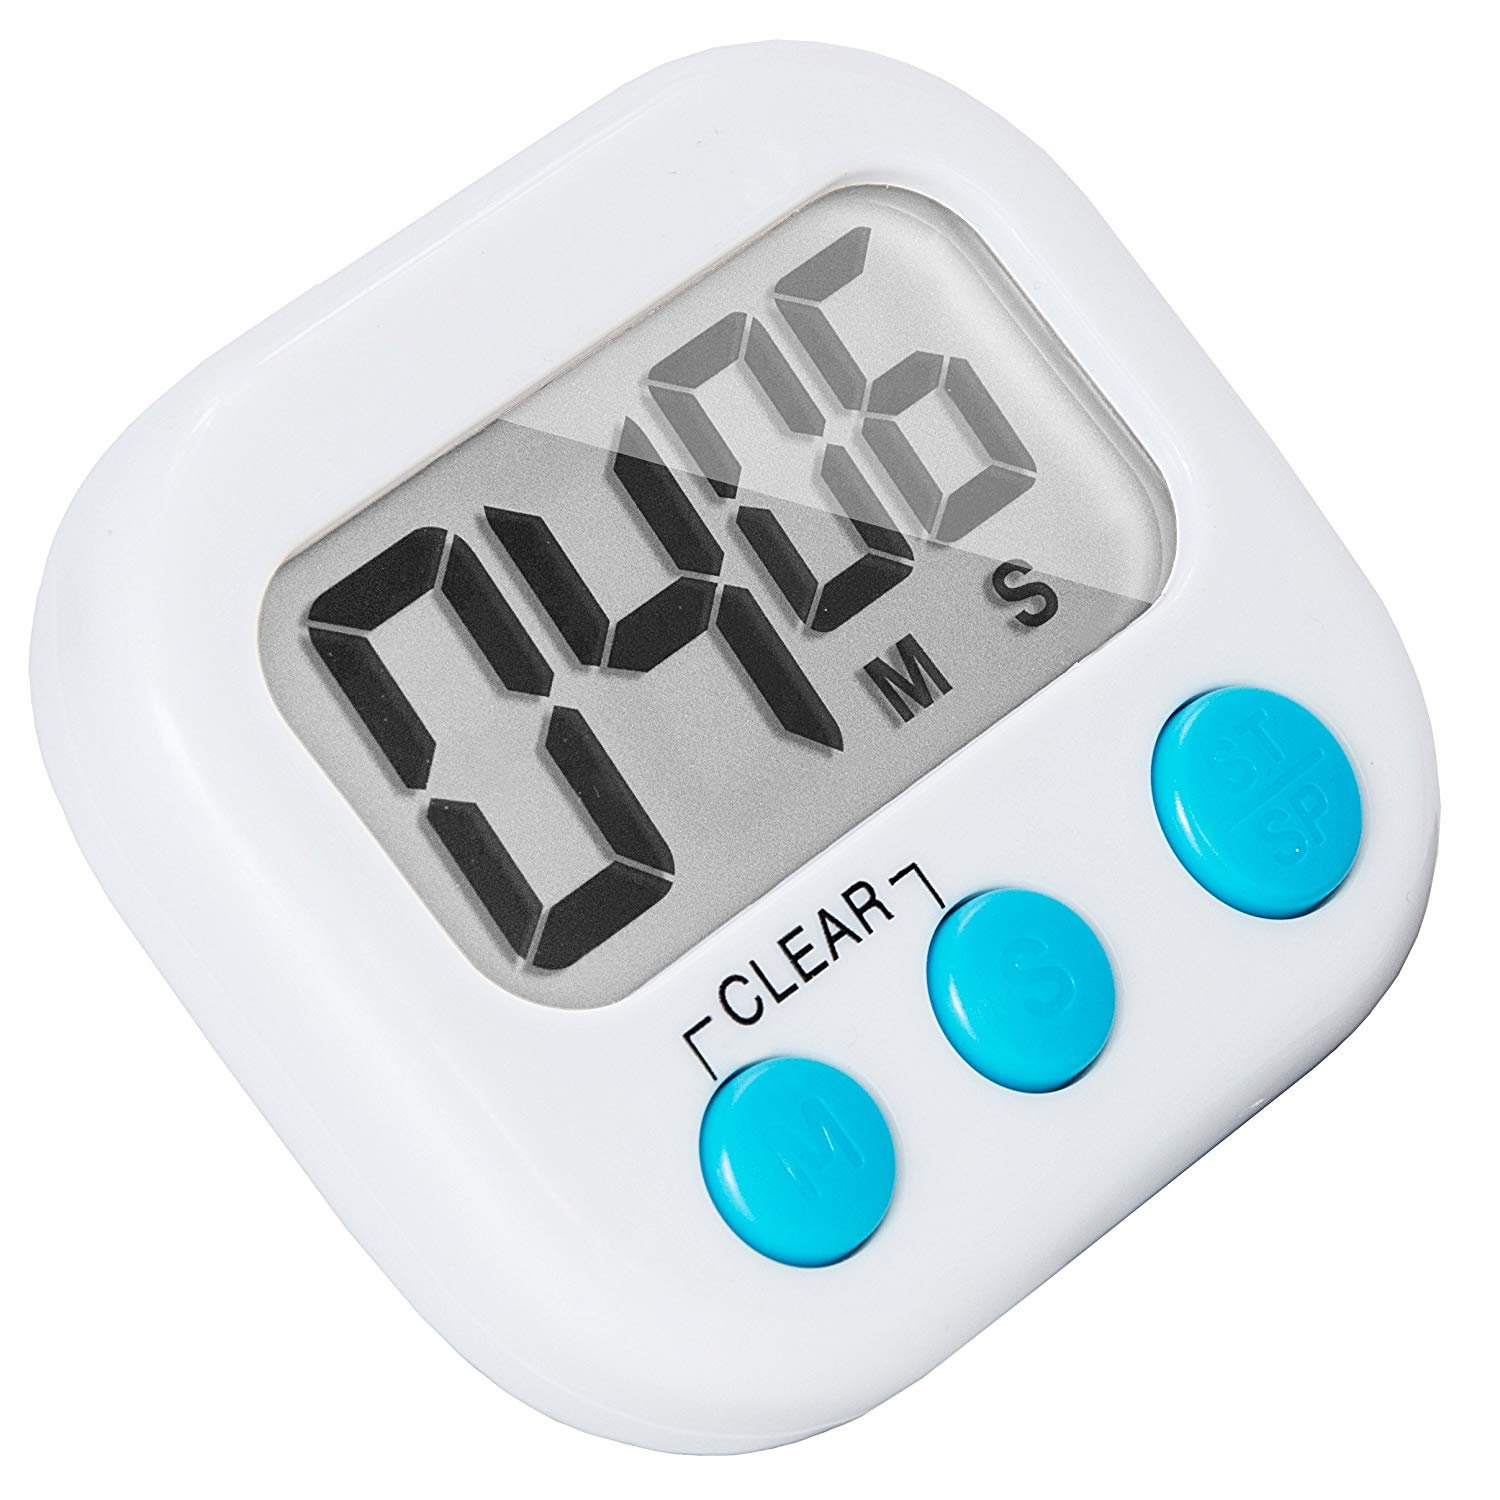 6 Pack Small Digital Kitchen Timer Magnetic Back And ON/OFF Switch,Minute Second Count Up Countdown by LinkDm (Image #2)